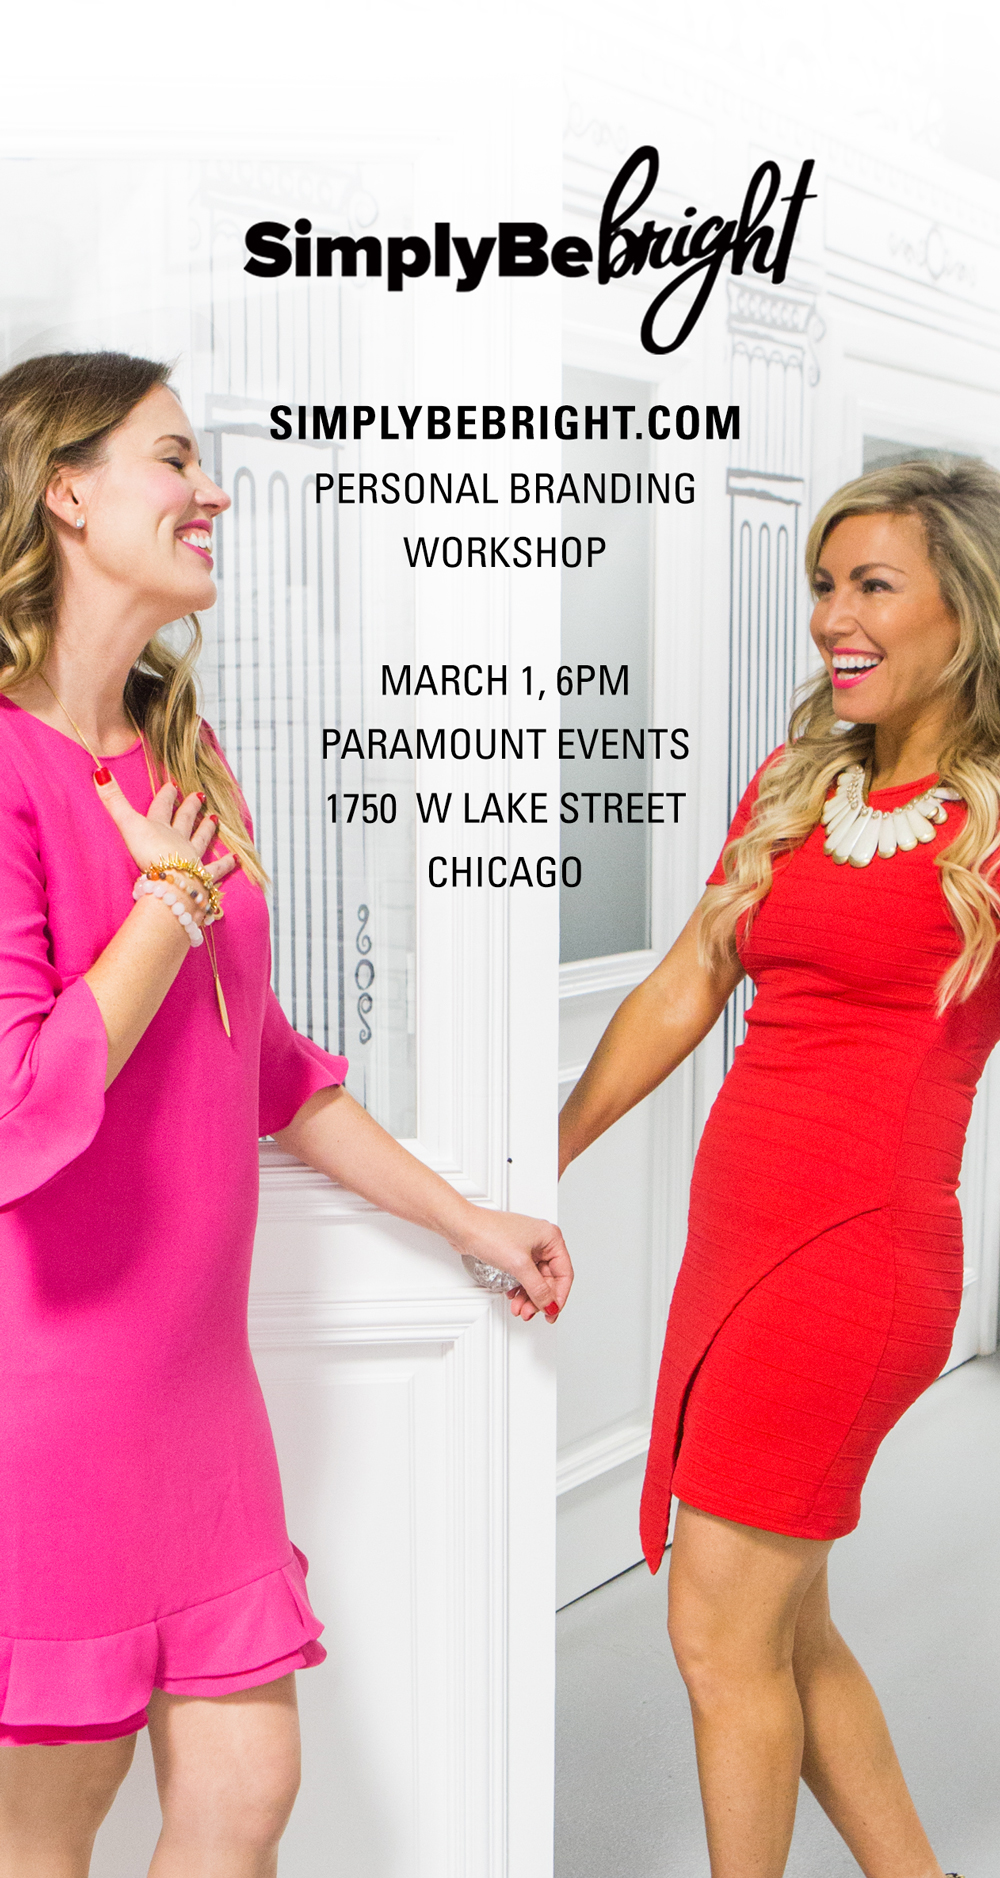 SimplyBe Bright Personal branding workshop in Chicago